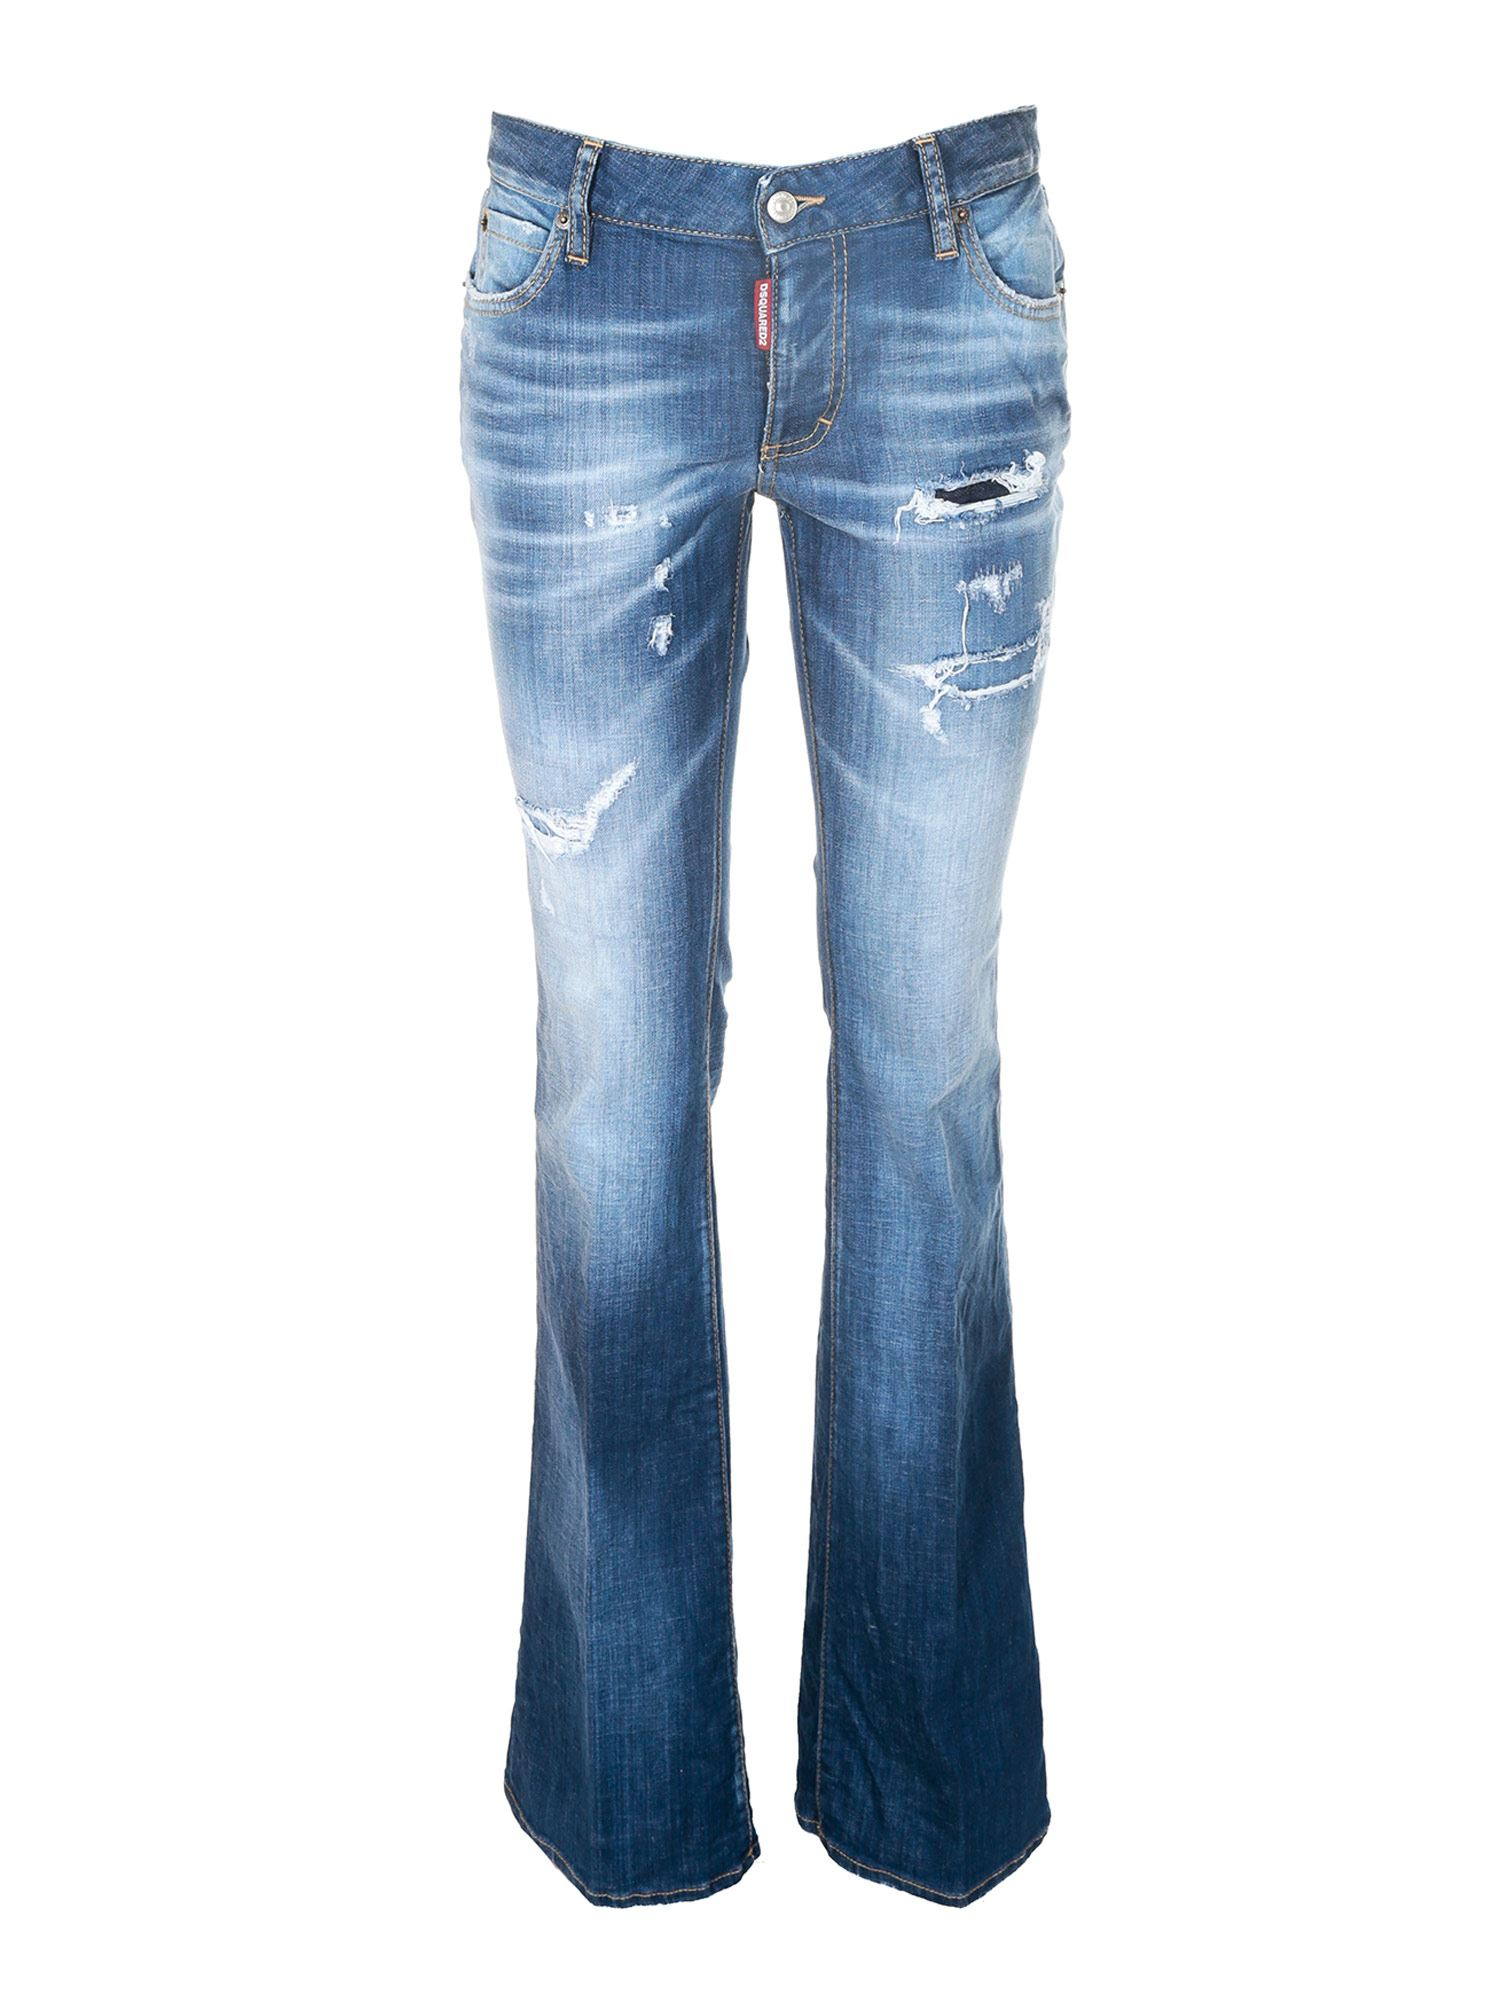 Dsquared2 MEDIUM WAIST FLARE JEANS IN BLUE